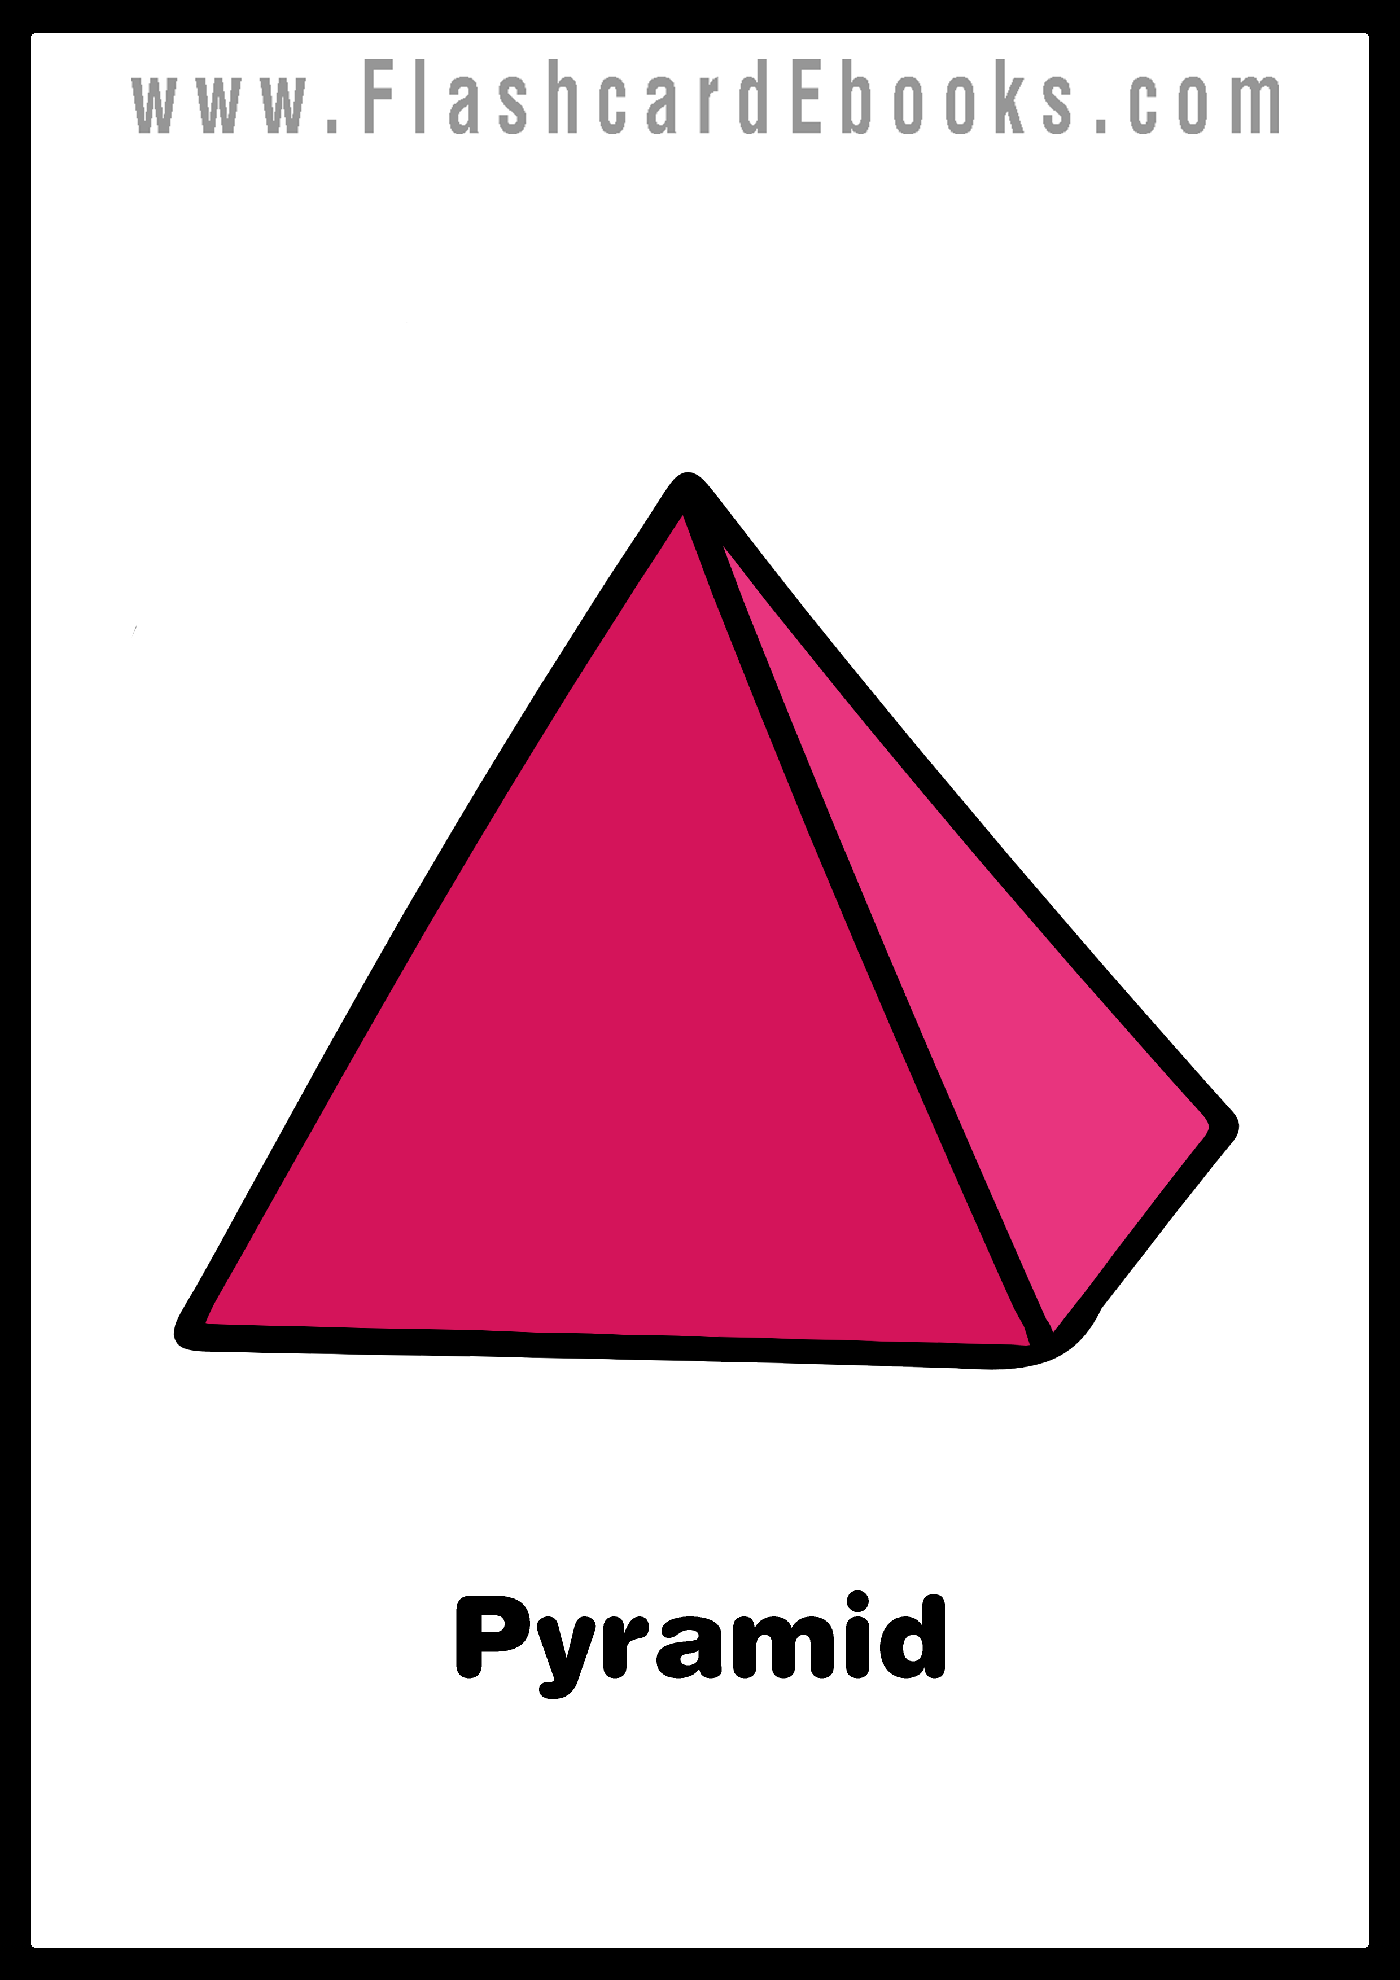 English Flashcard Kindle Shapes Pyramid